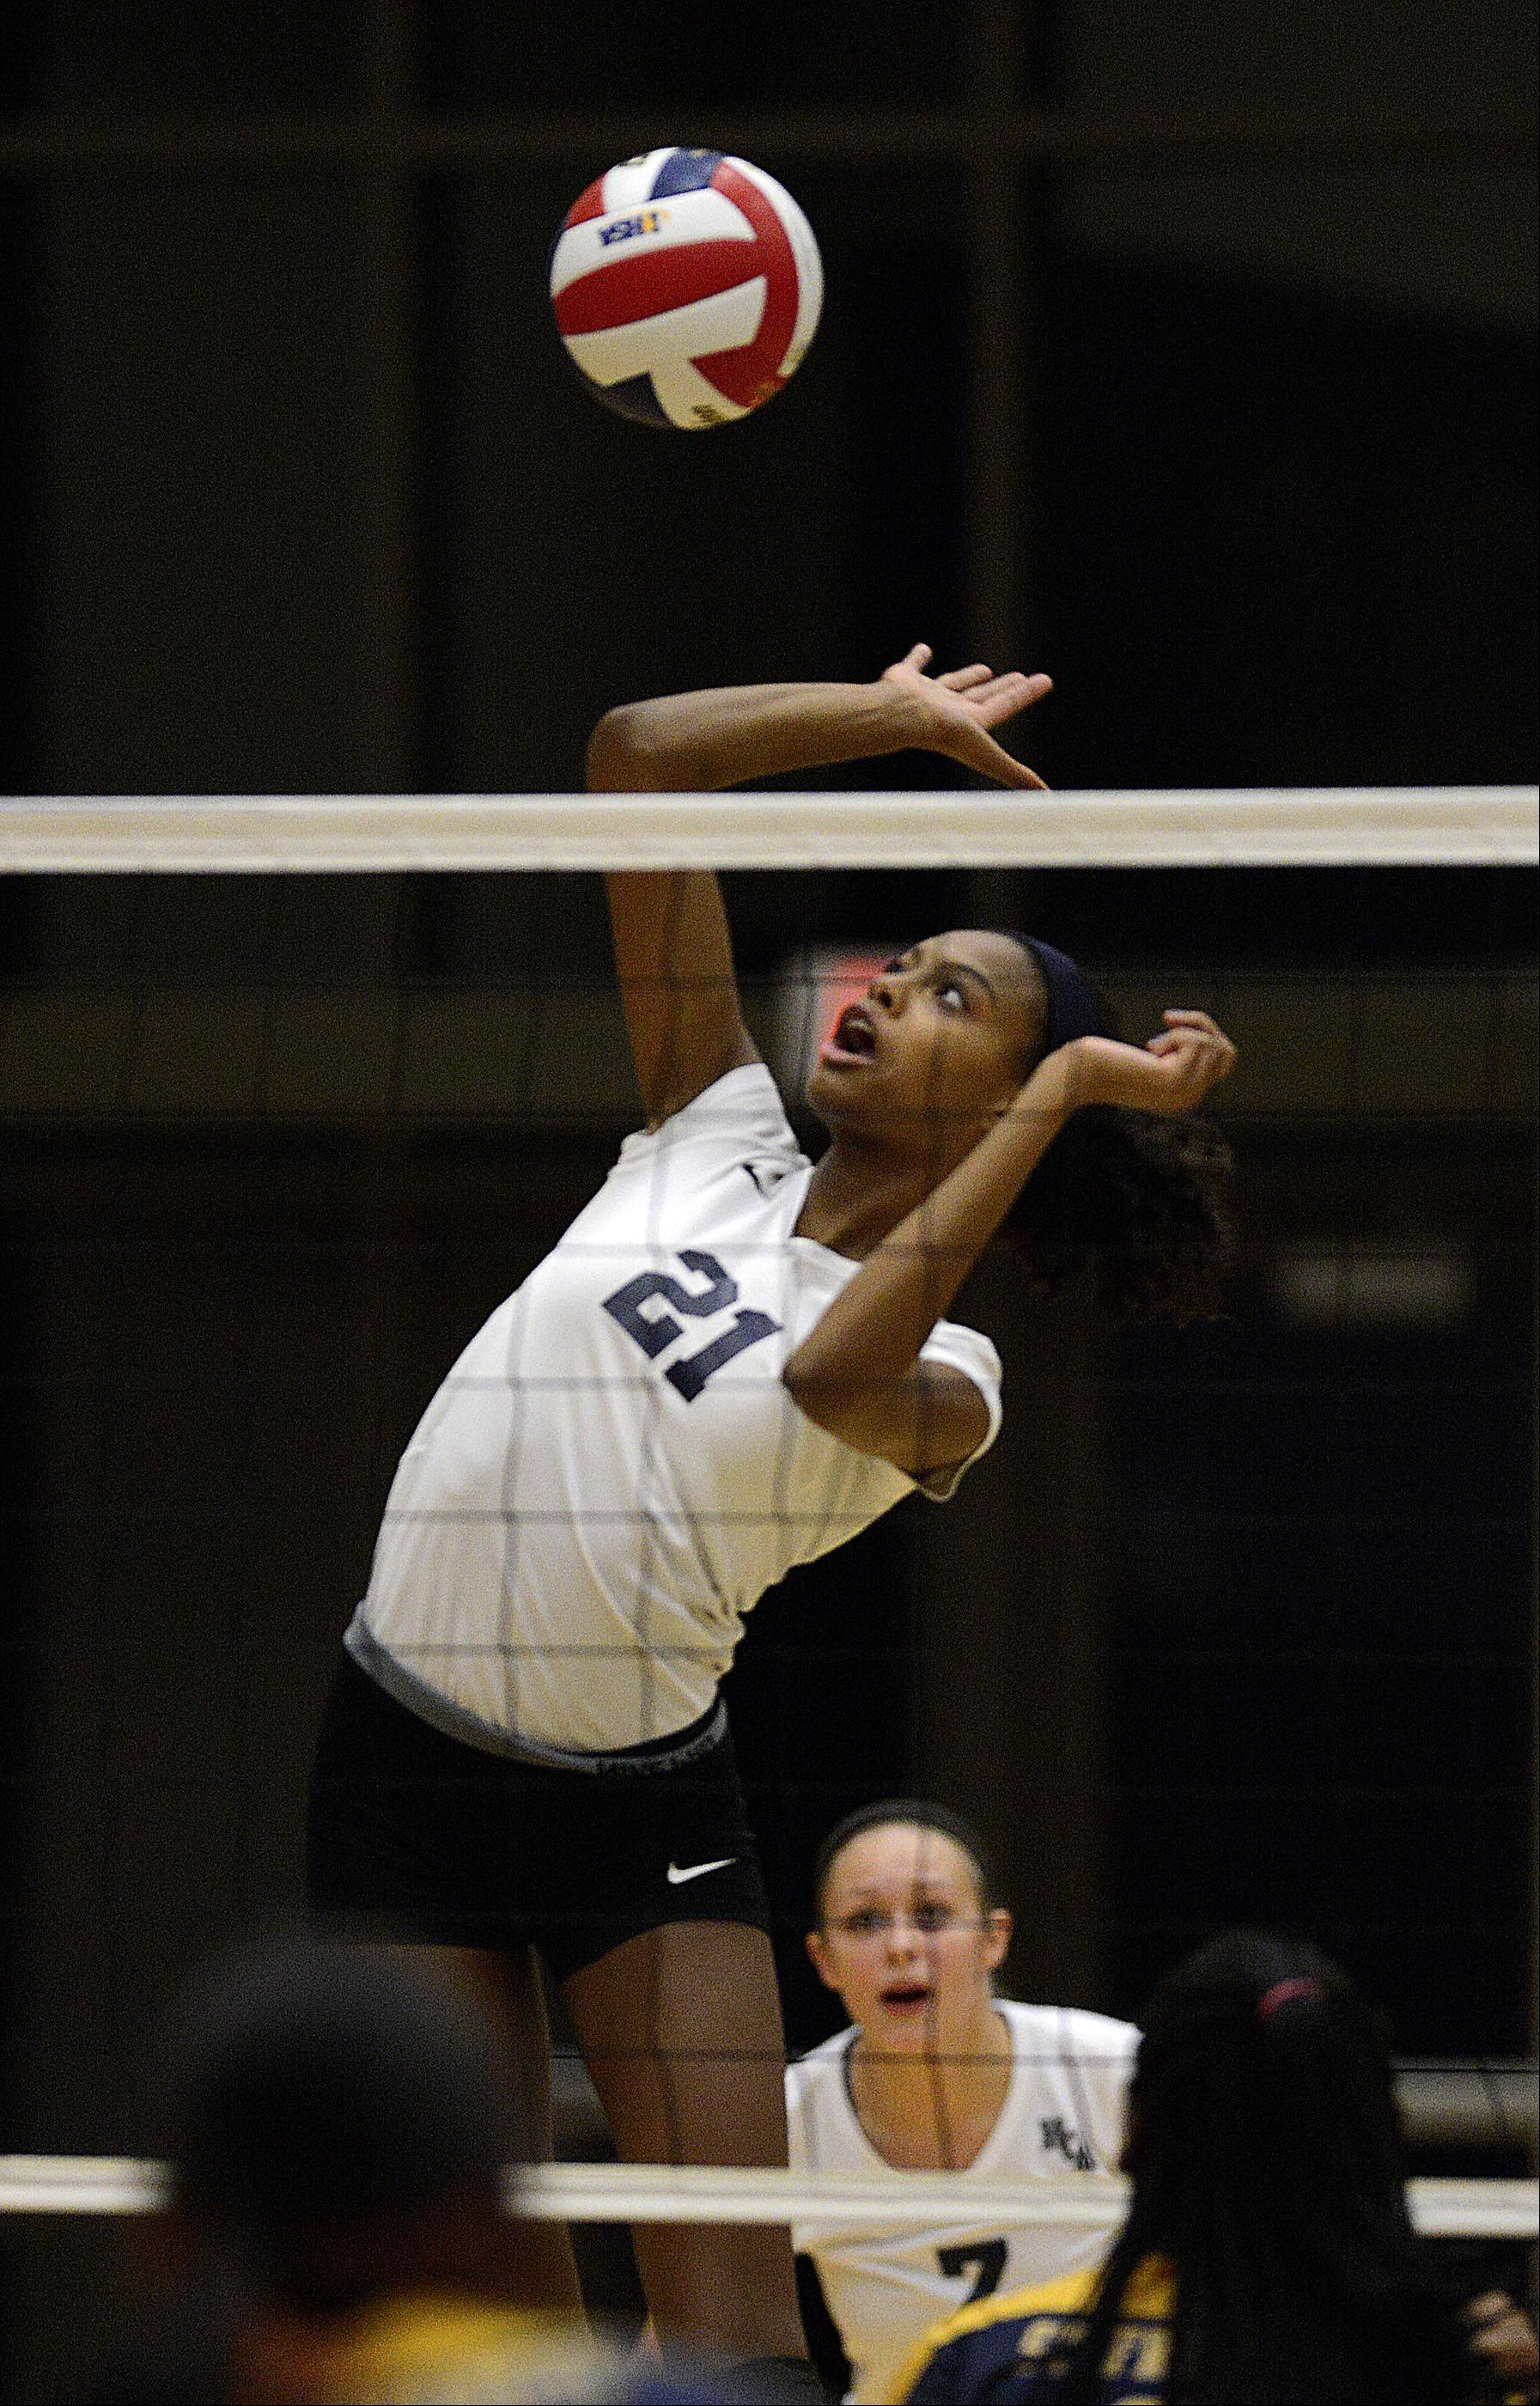 Harvest Christian Academy's Mikayla Robinson spikes the volleyball against St. Francis de Sales in the sectional final in Elgin Thursday.